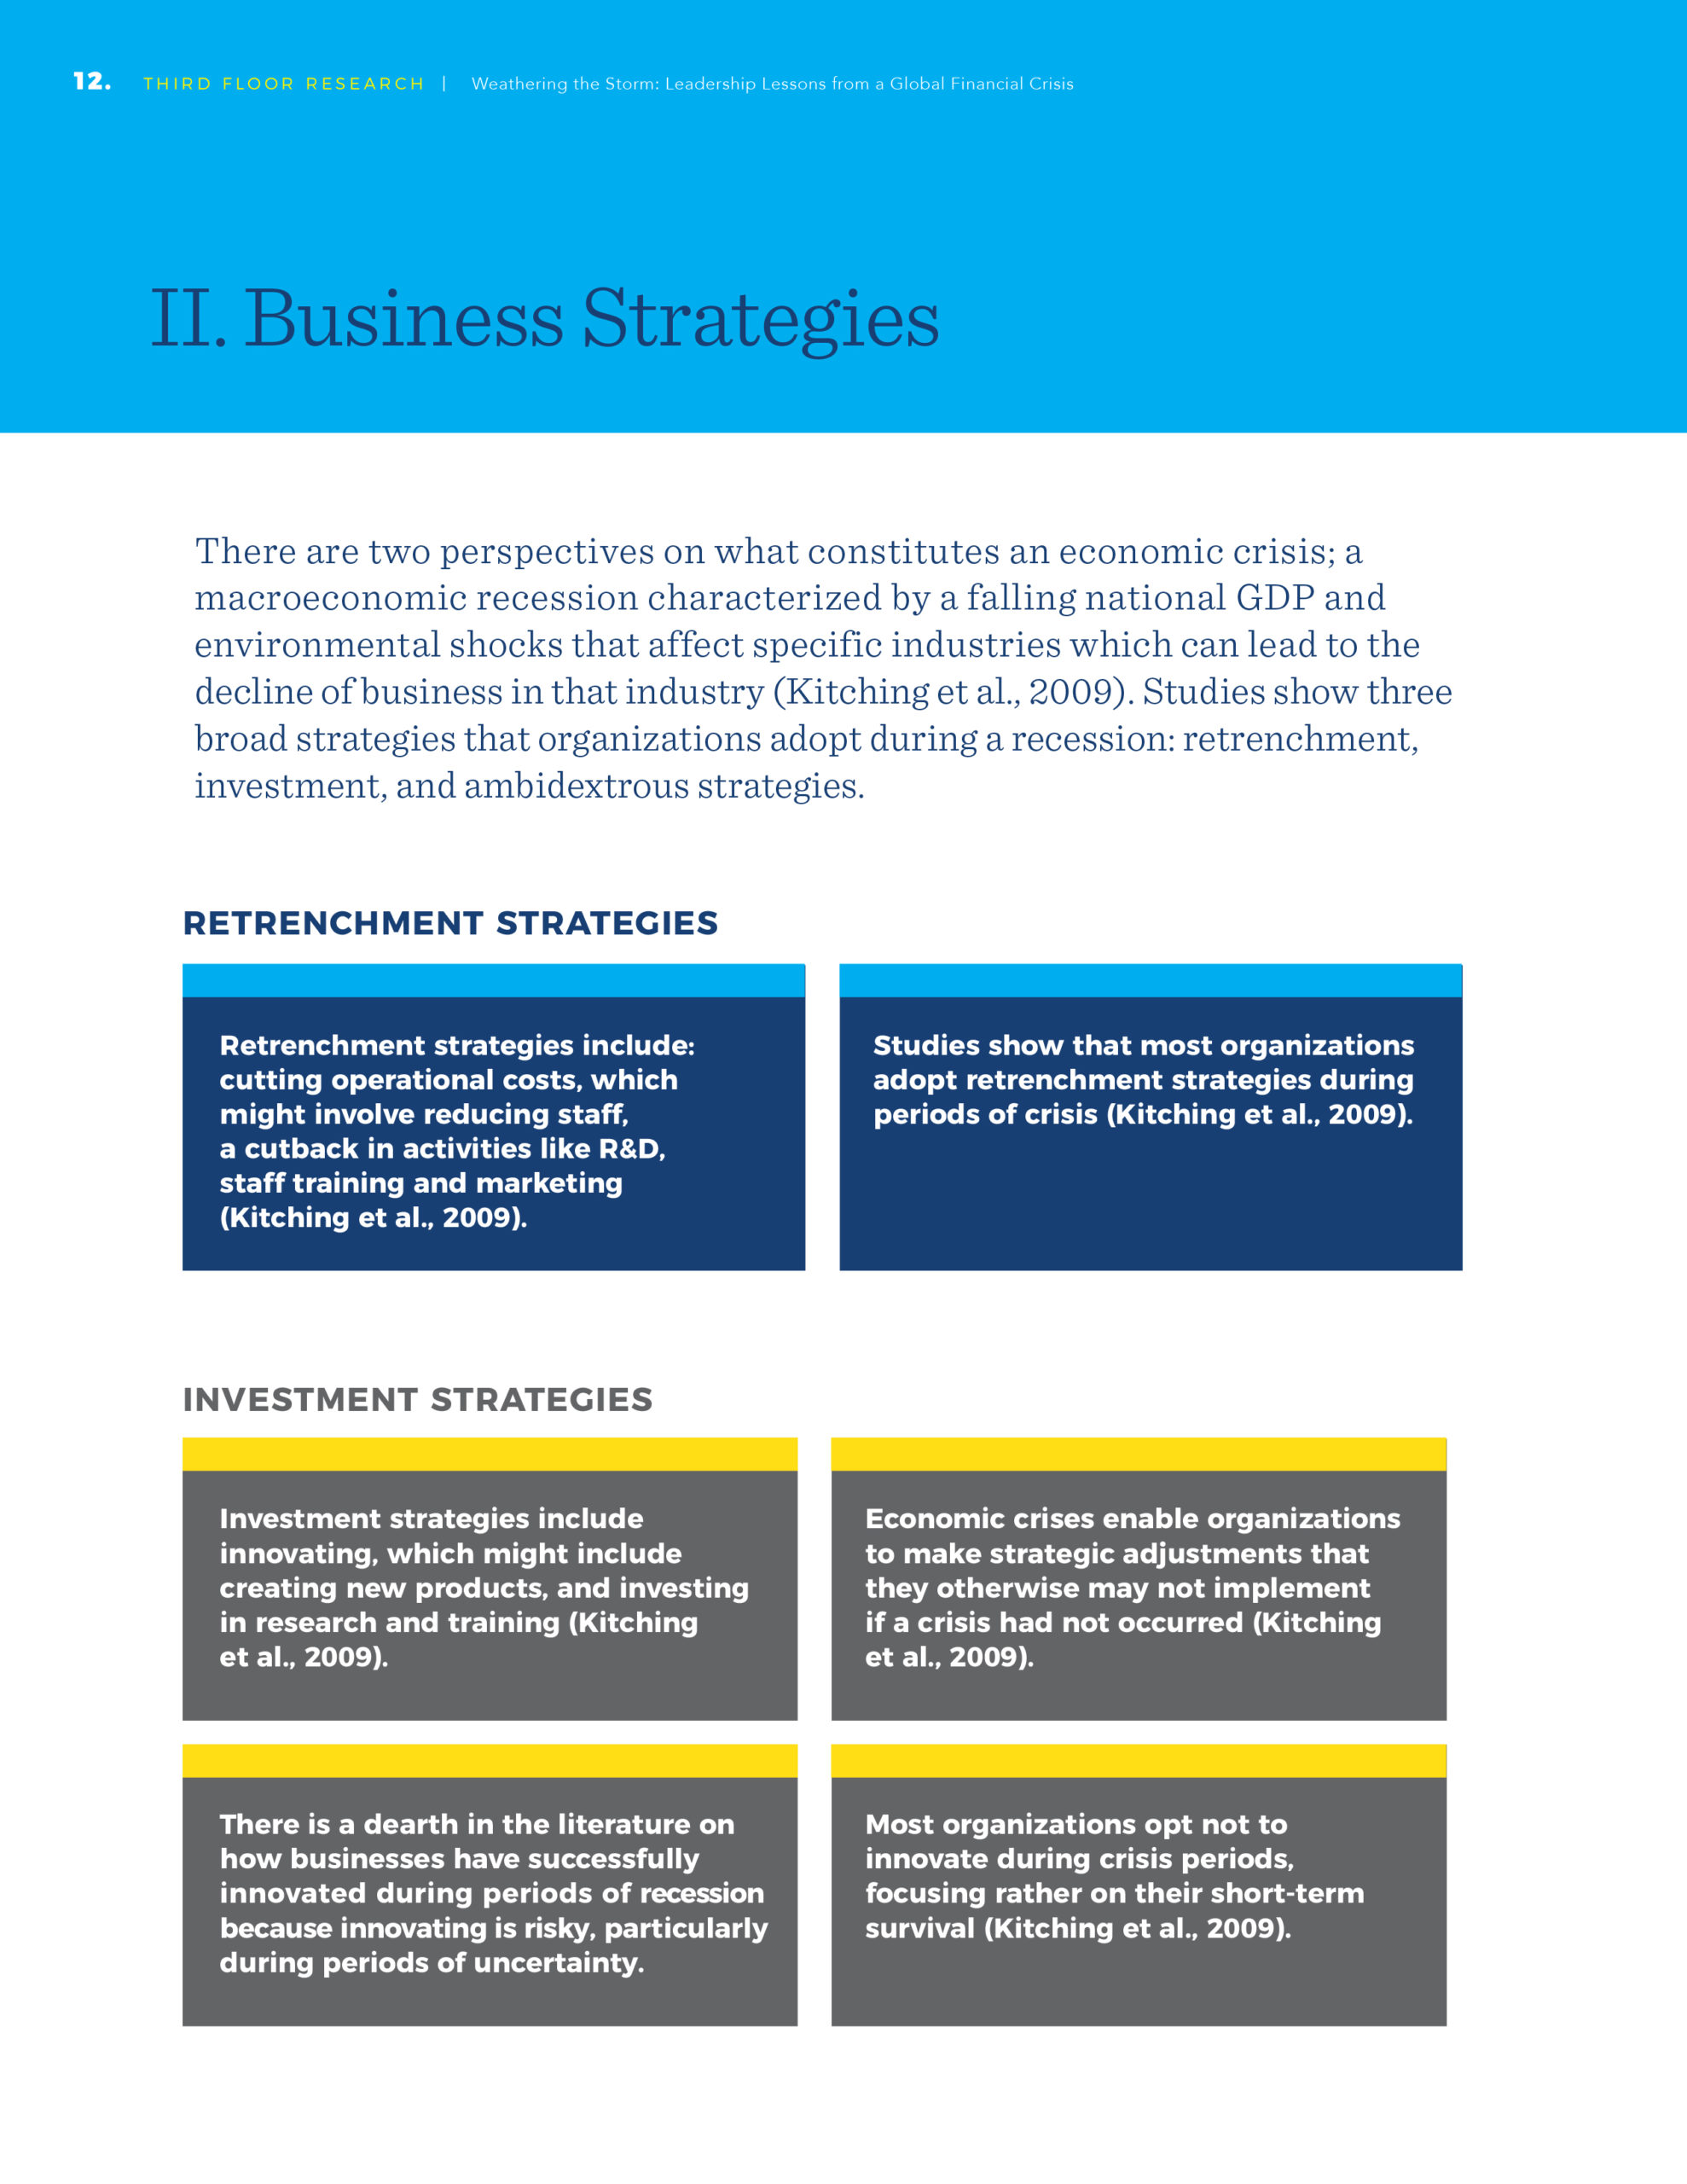 Weathering the Storm - Business Strategies Report Page